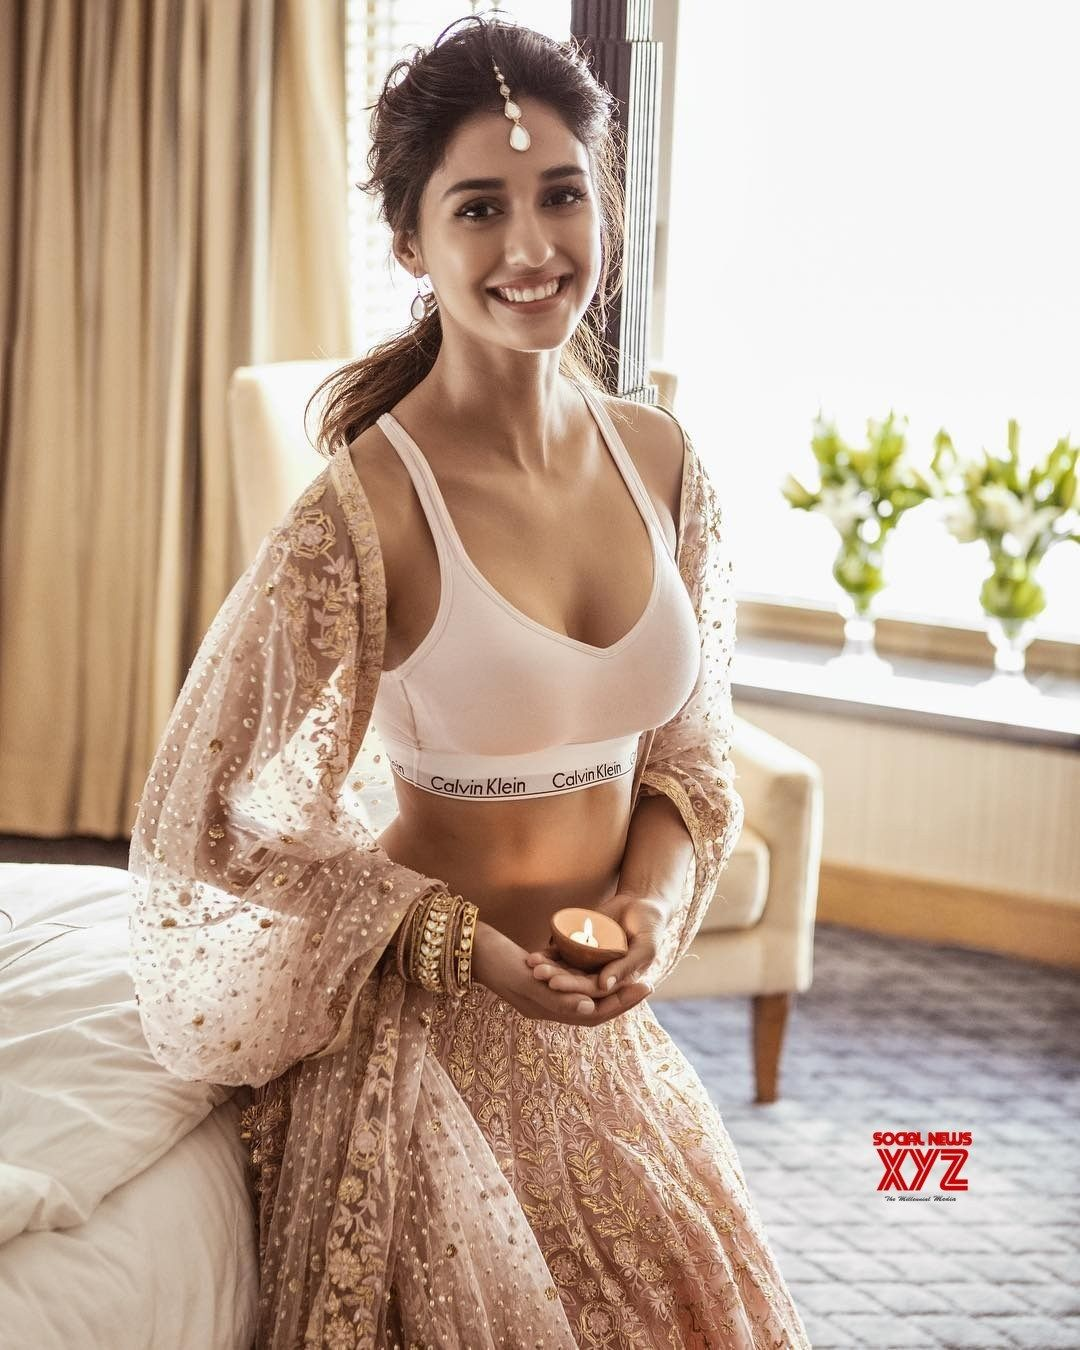 Pictures Disha Patani nudes (51 photos), Topless, Cleavage, Feet, braless 2015